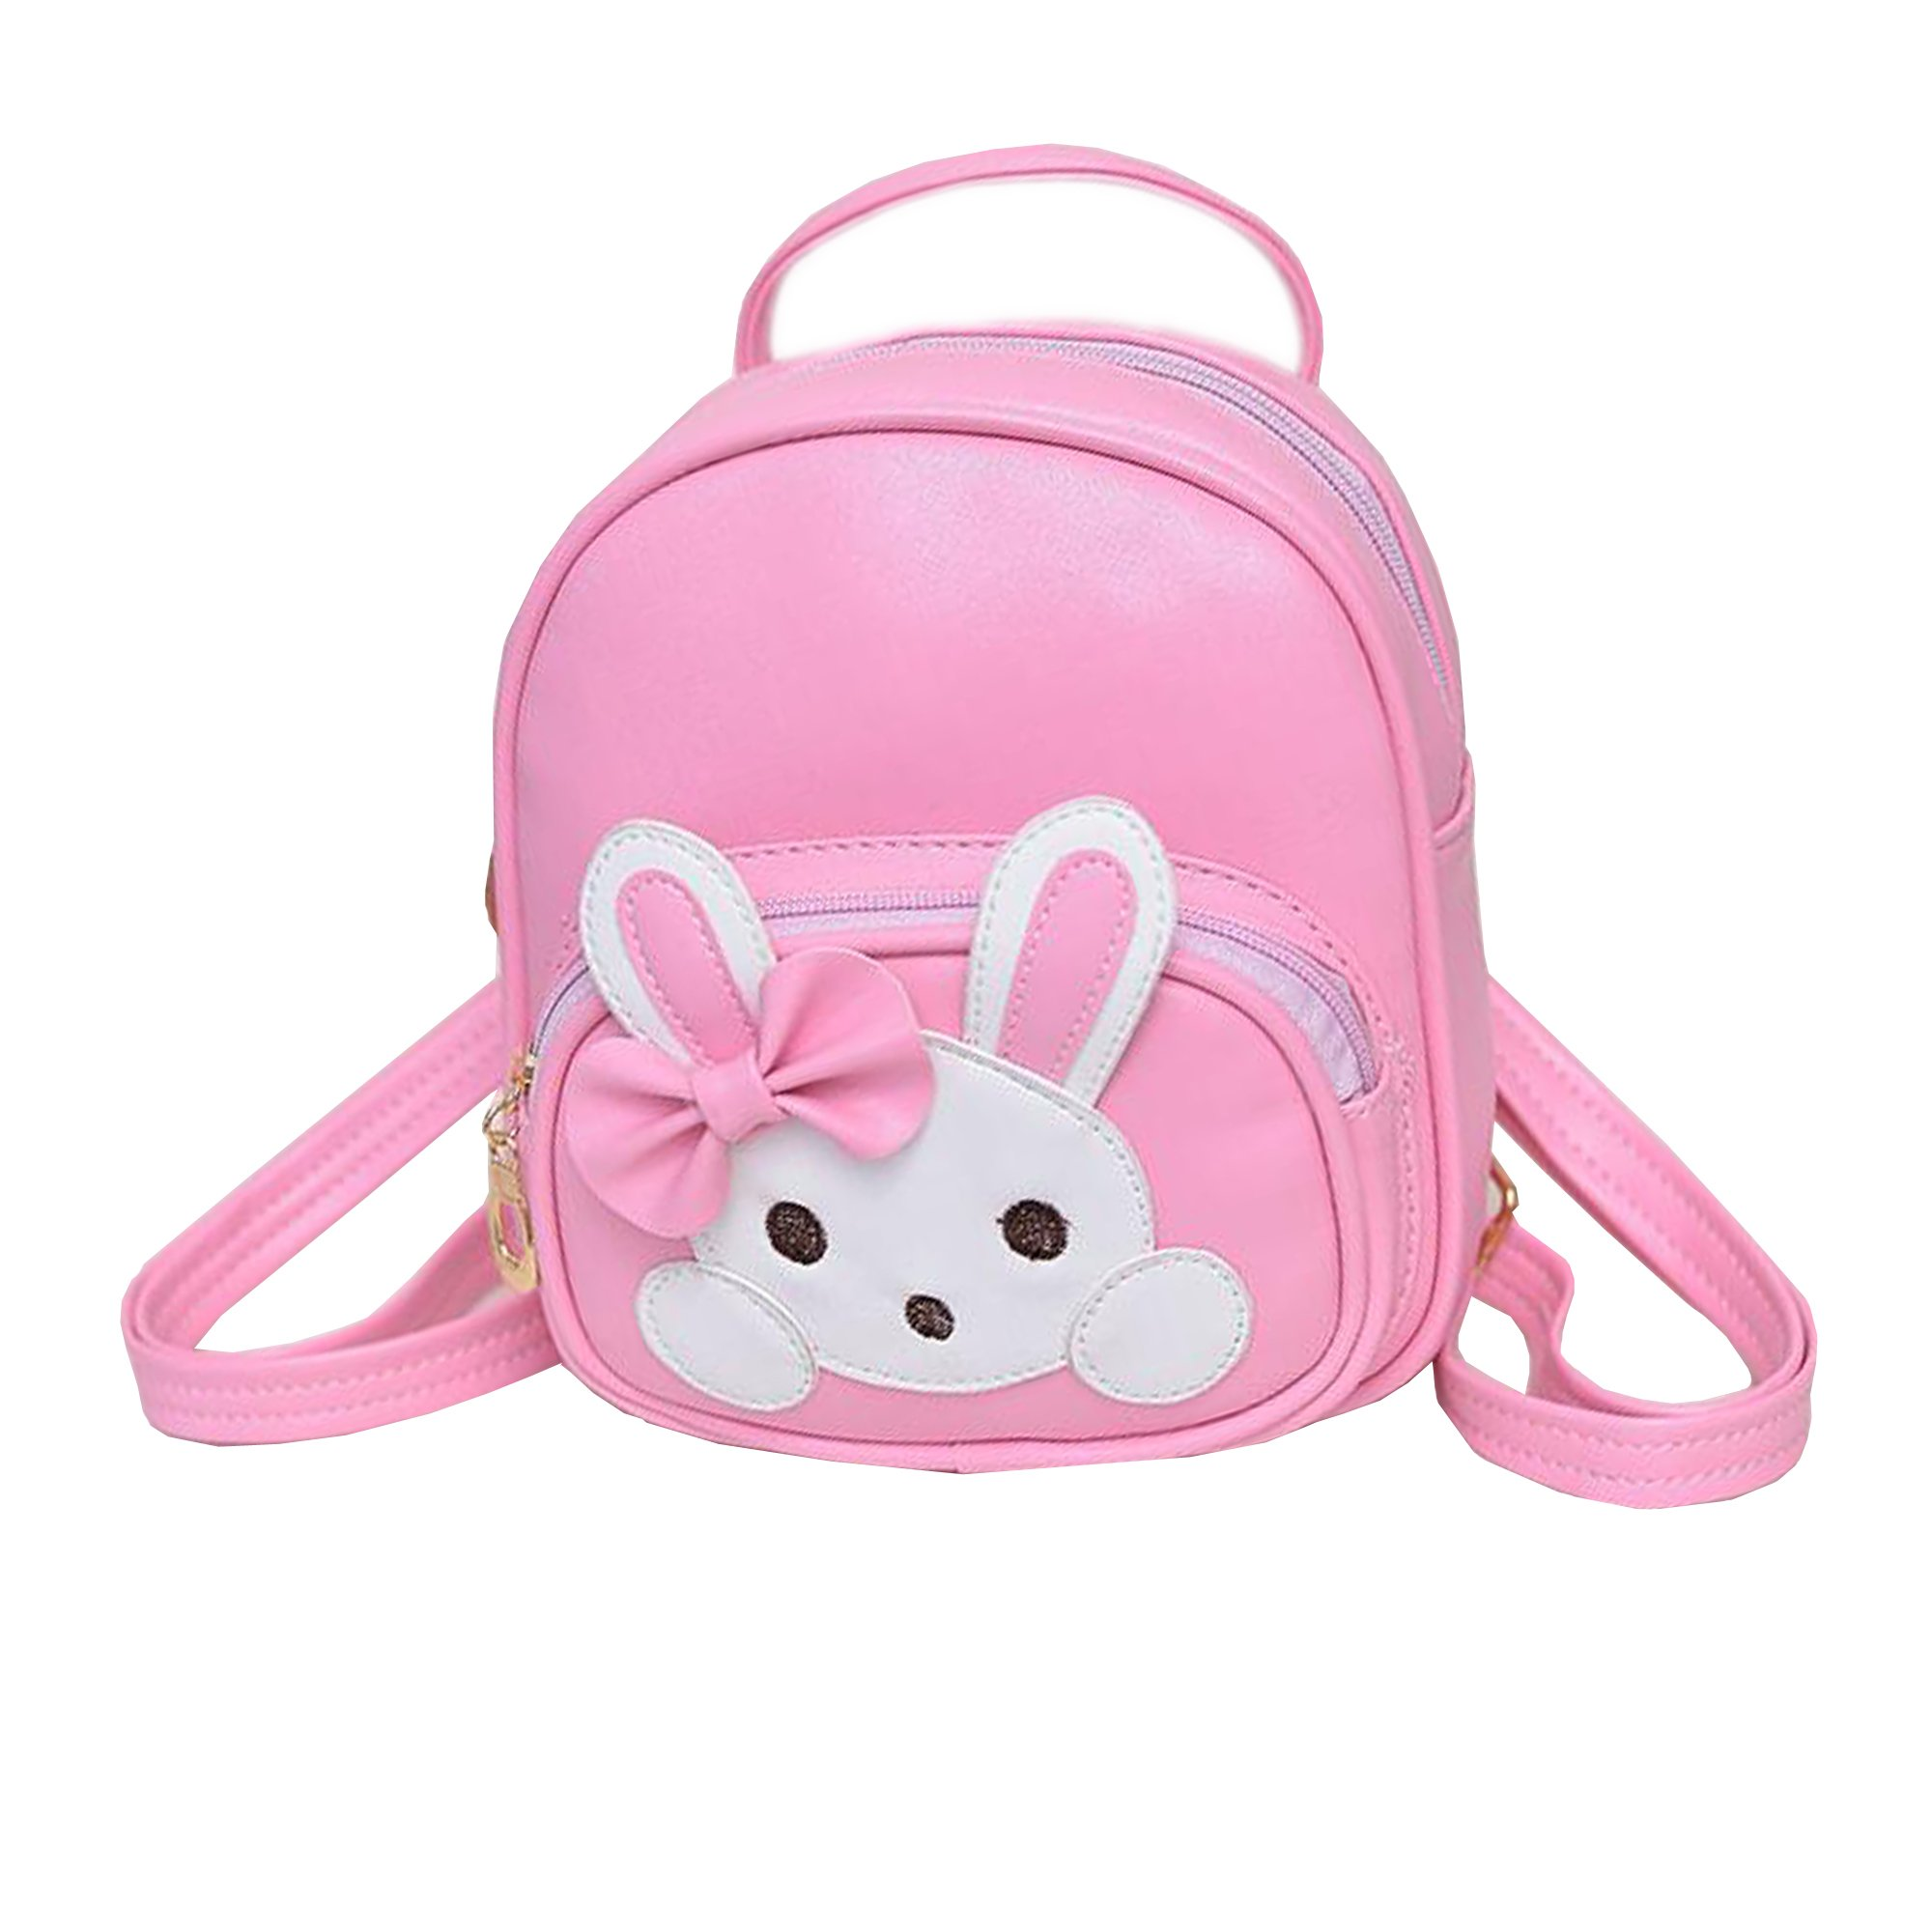 JIANBAO Girls Kids Rabbit Mini Backpack Travel School Book Bags Children Lovely Daypack Satchel (pink)